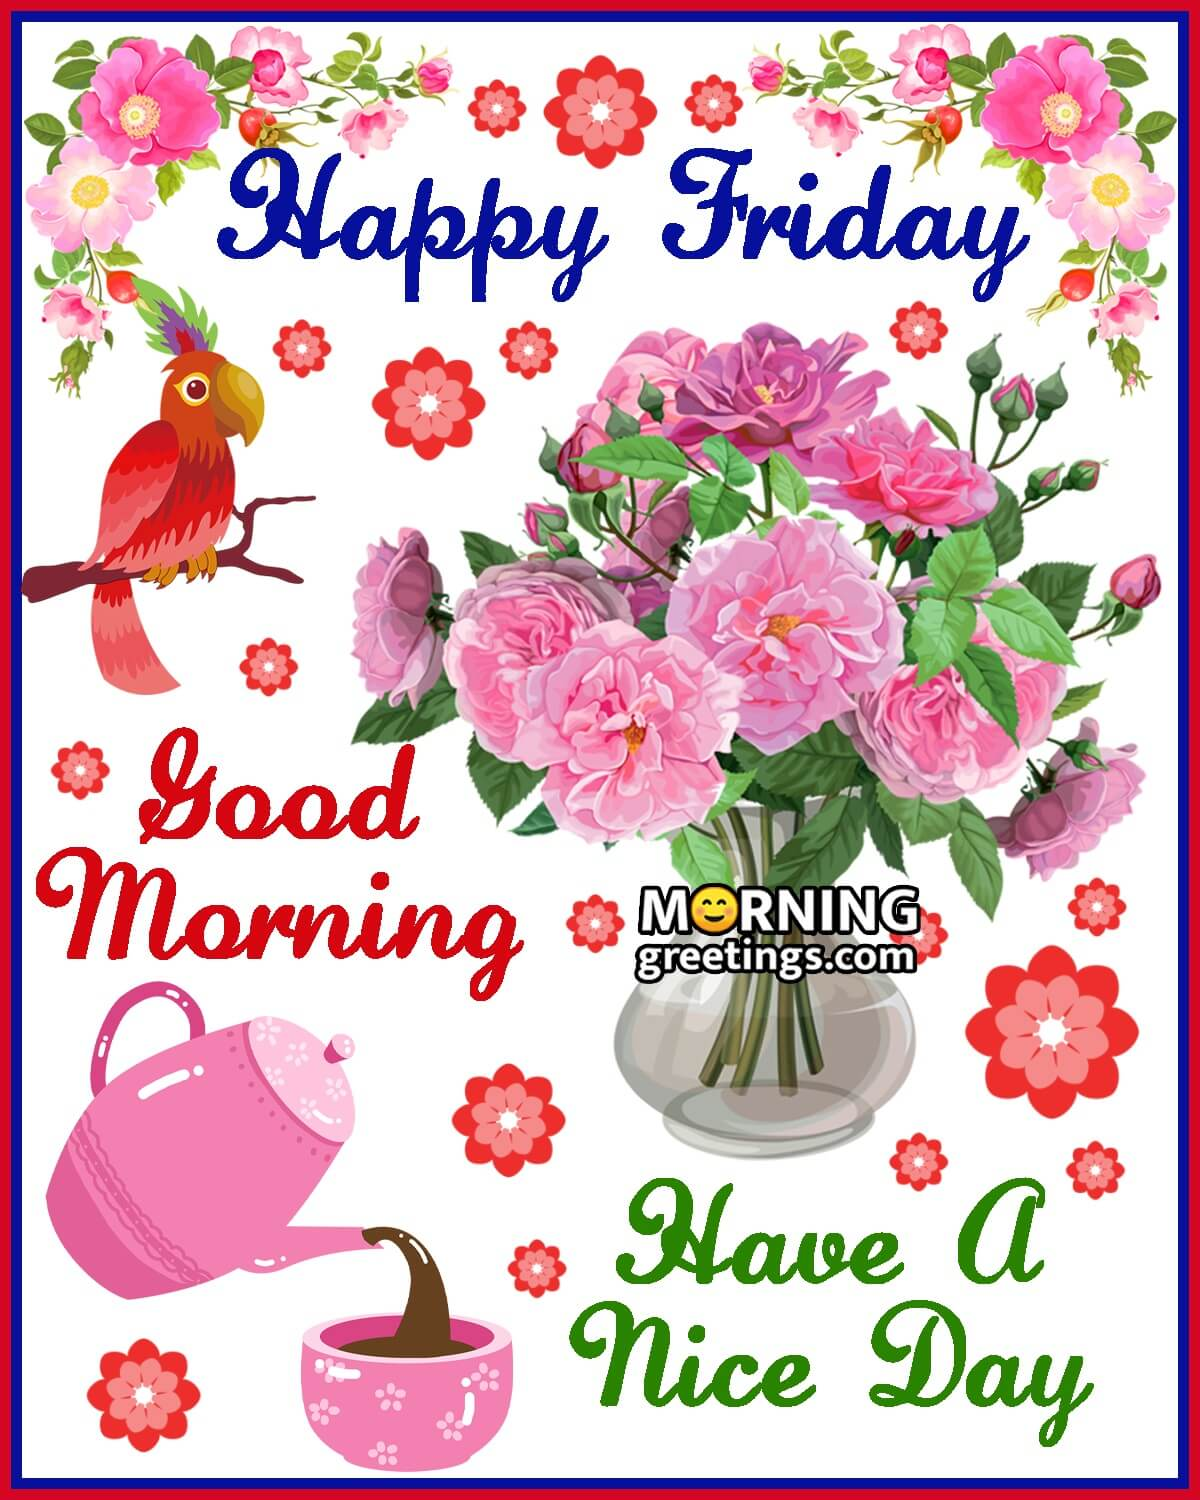 50 Good Morning Happy Friday Images Morning Greetings Morning Quotes And Wishes Images